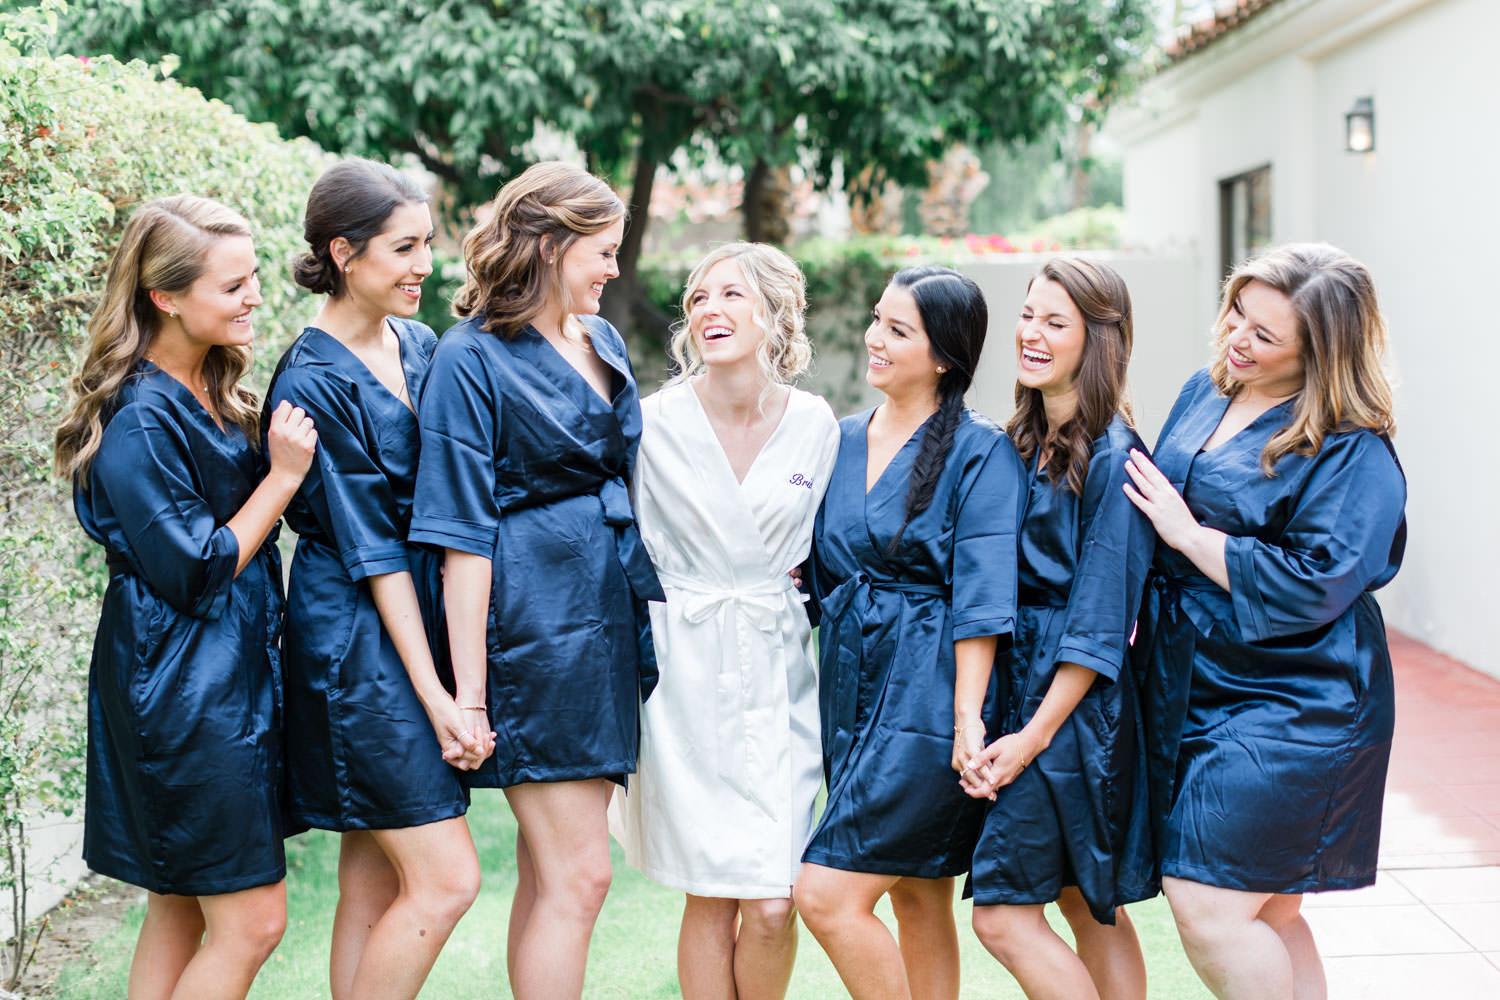 La Quinta Resort, Bridesmaids in navy robes with the bride in a white robe, Cavin Elizabeth Photography